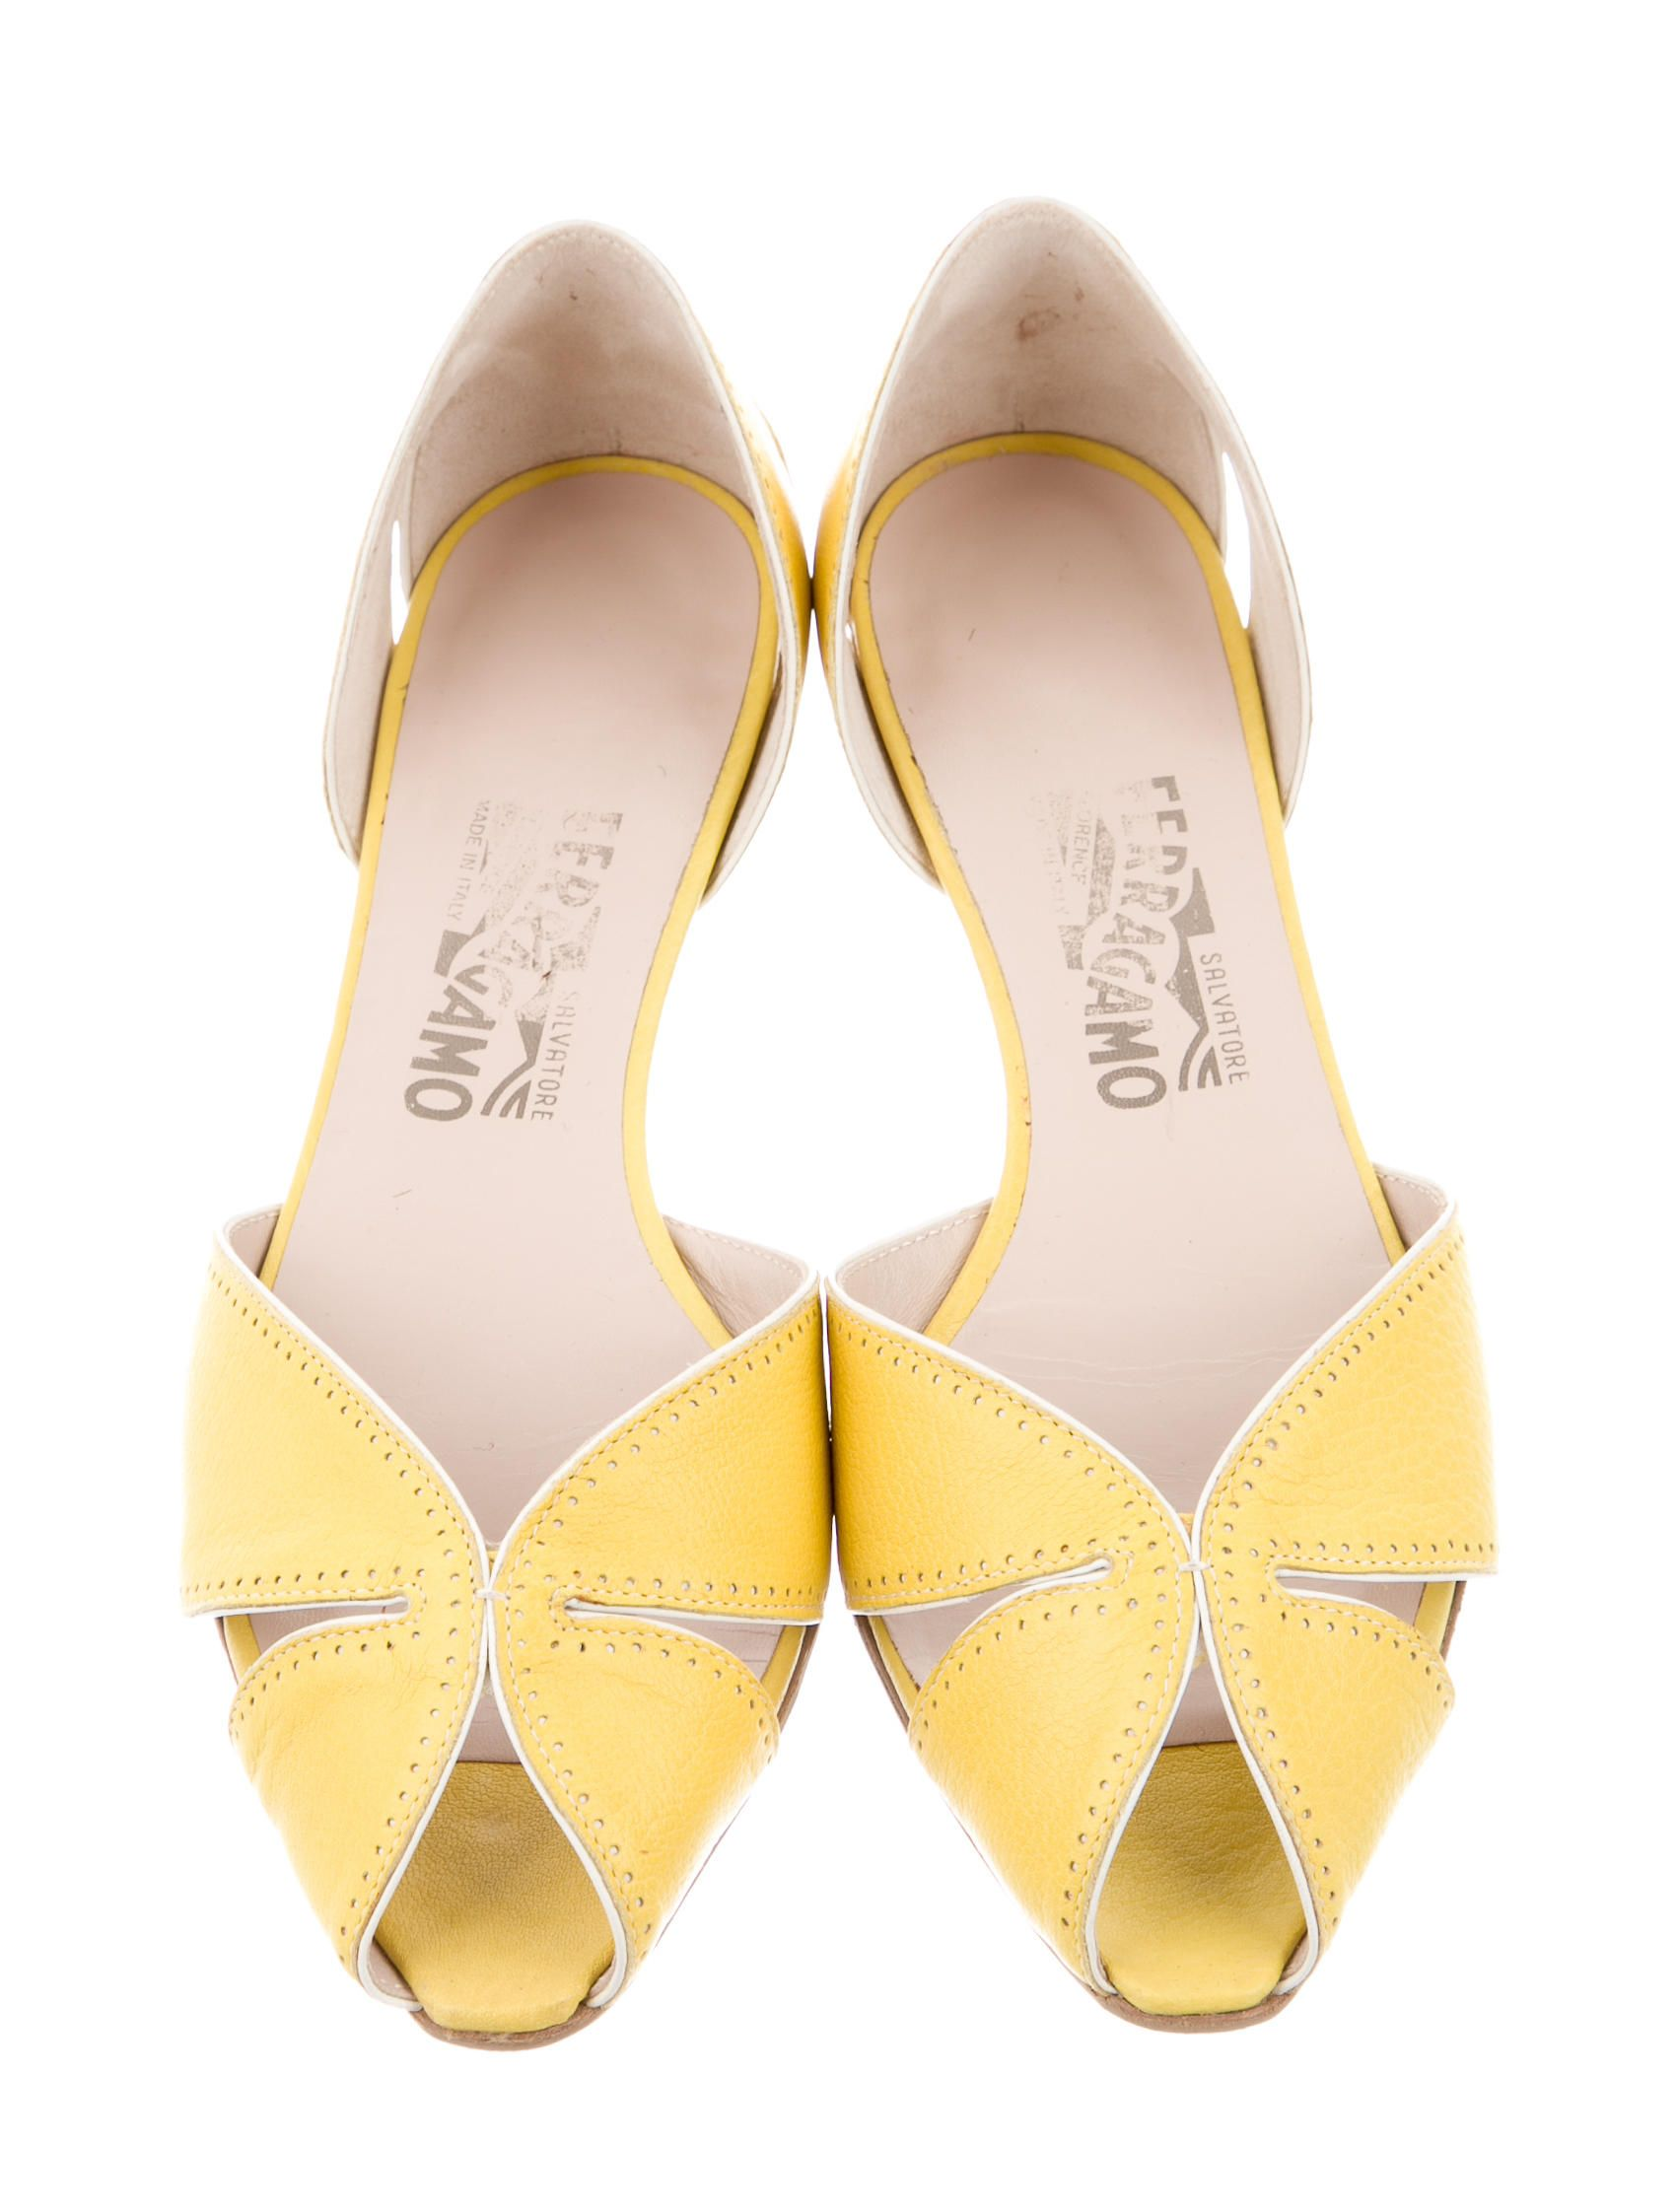 bomba Sede A fondo  Yellow leather Salvatore Ferragamo peep-toe flats with white leather trim,  perforated details and stacked heels. | Peep toe flats, Toe flats, Peep toe